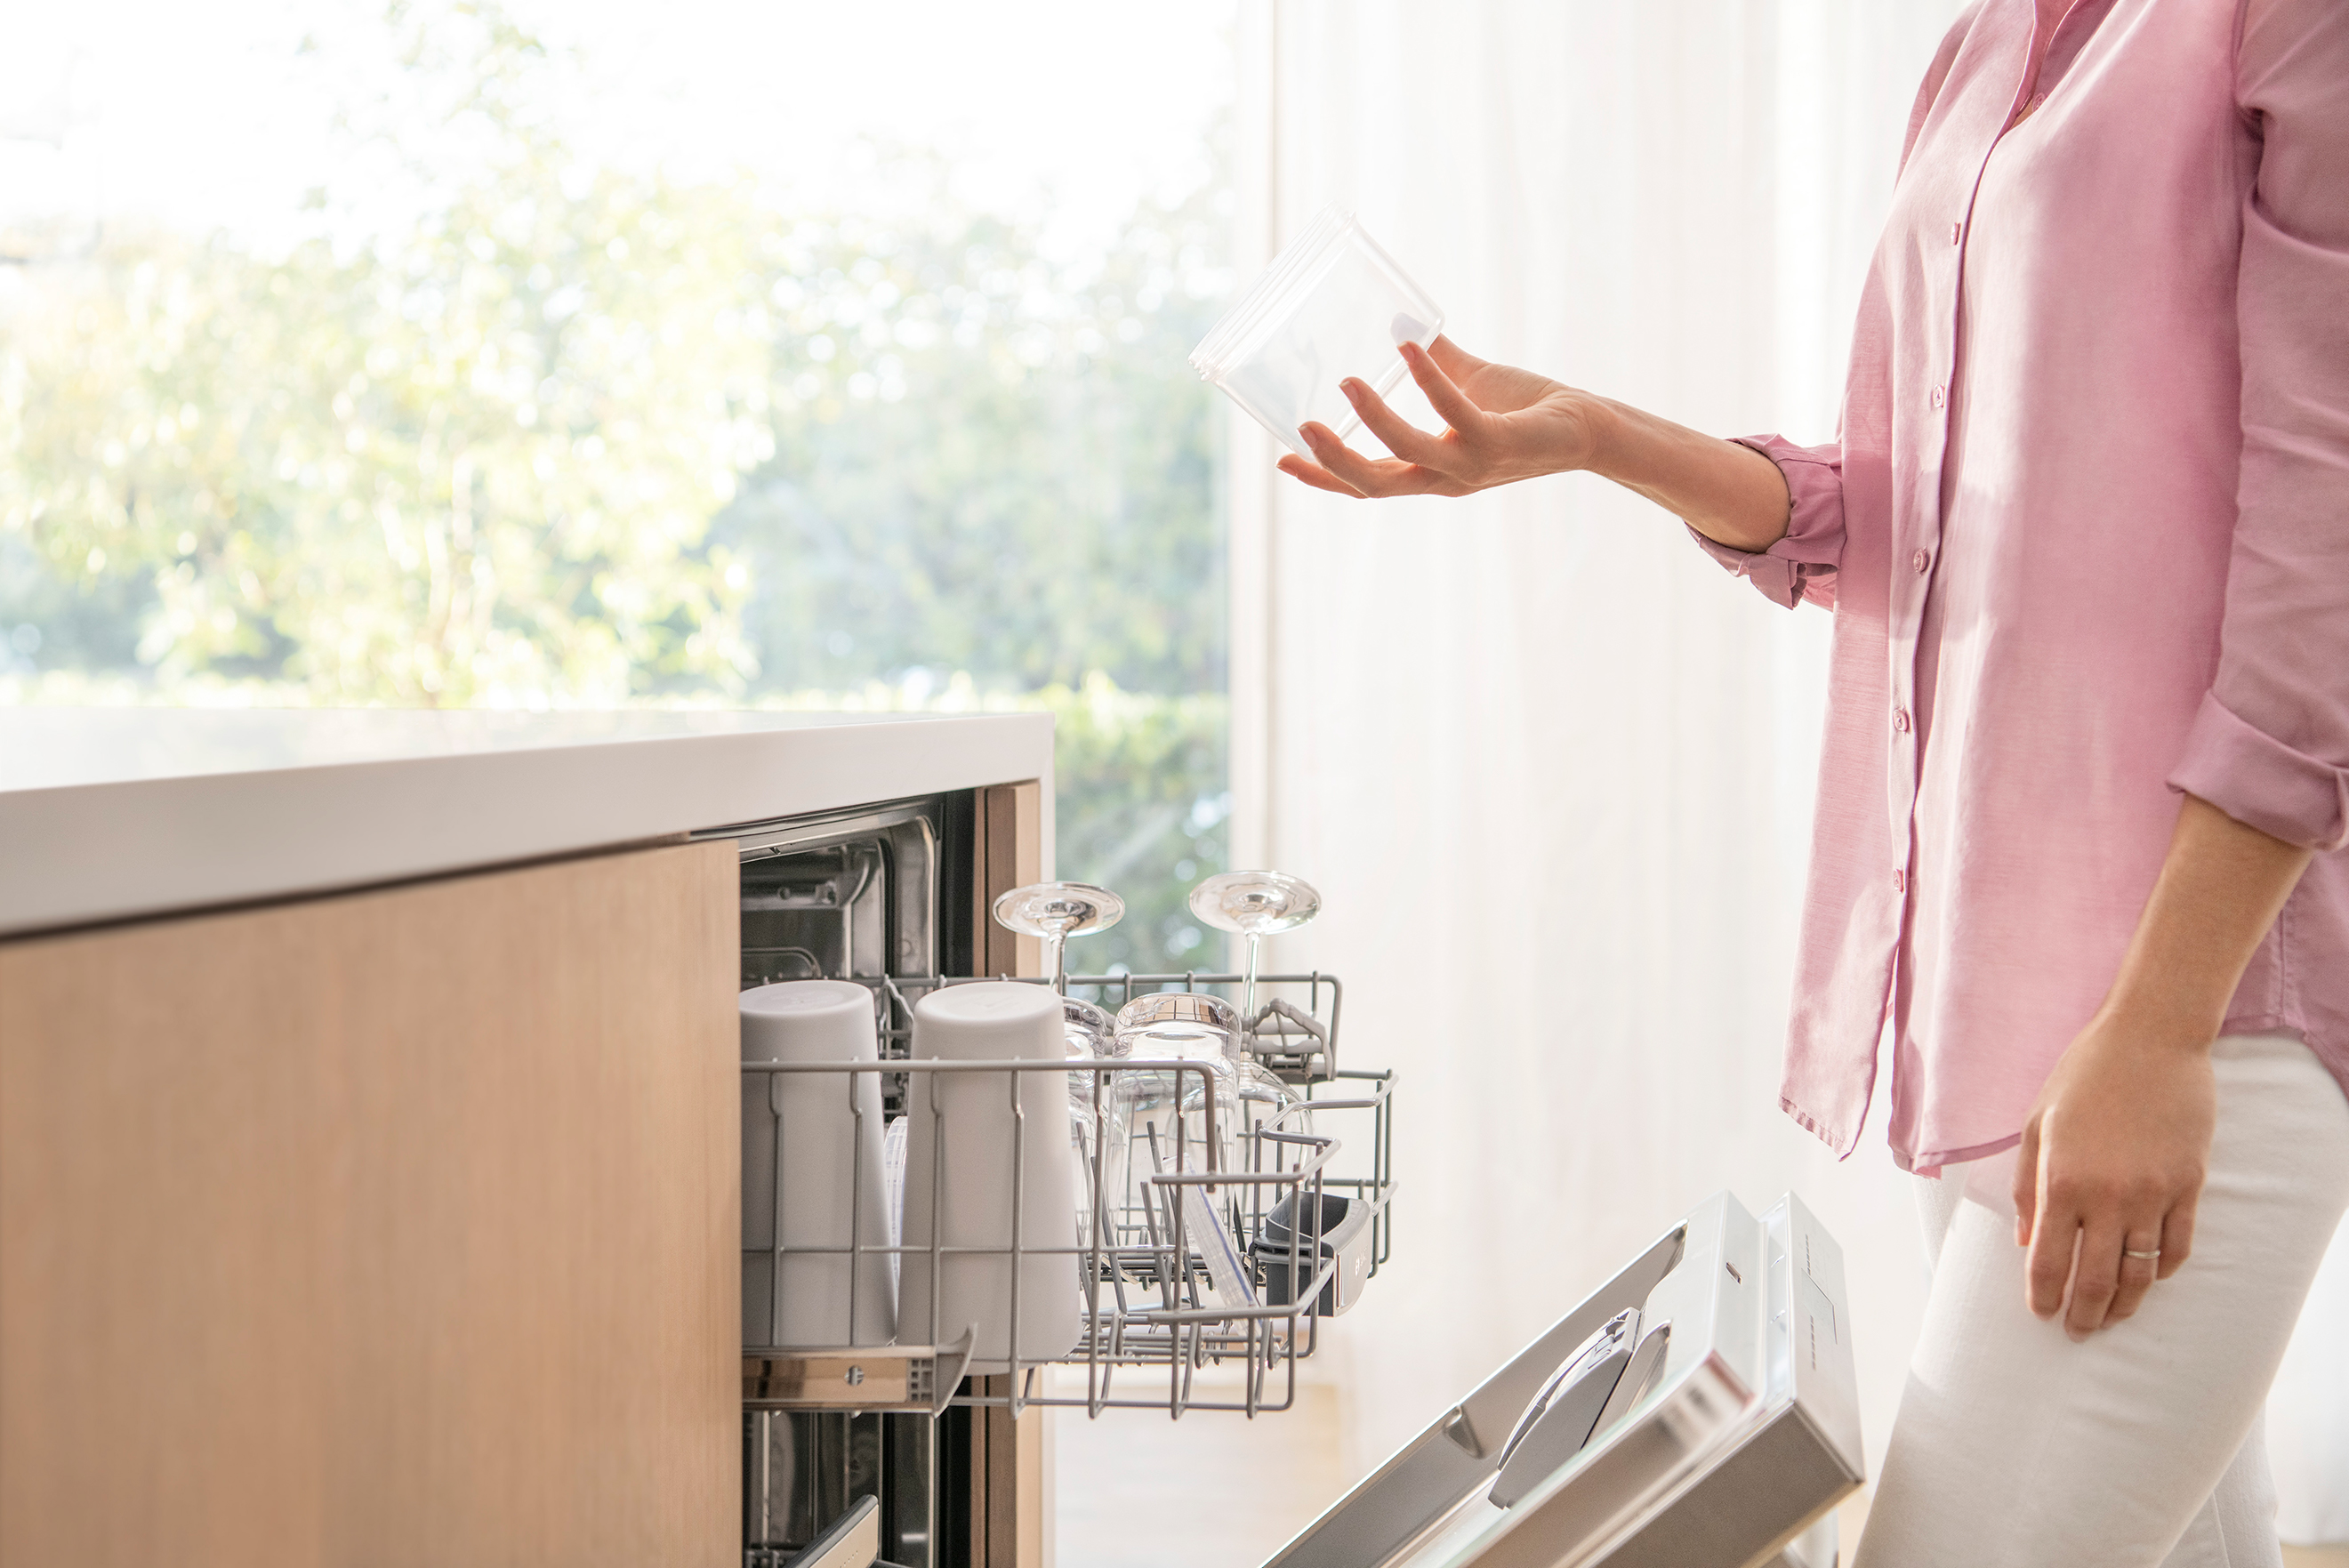 AutoAir™ Bosch 500 Series dishwasher